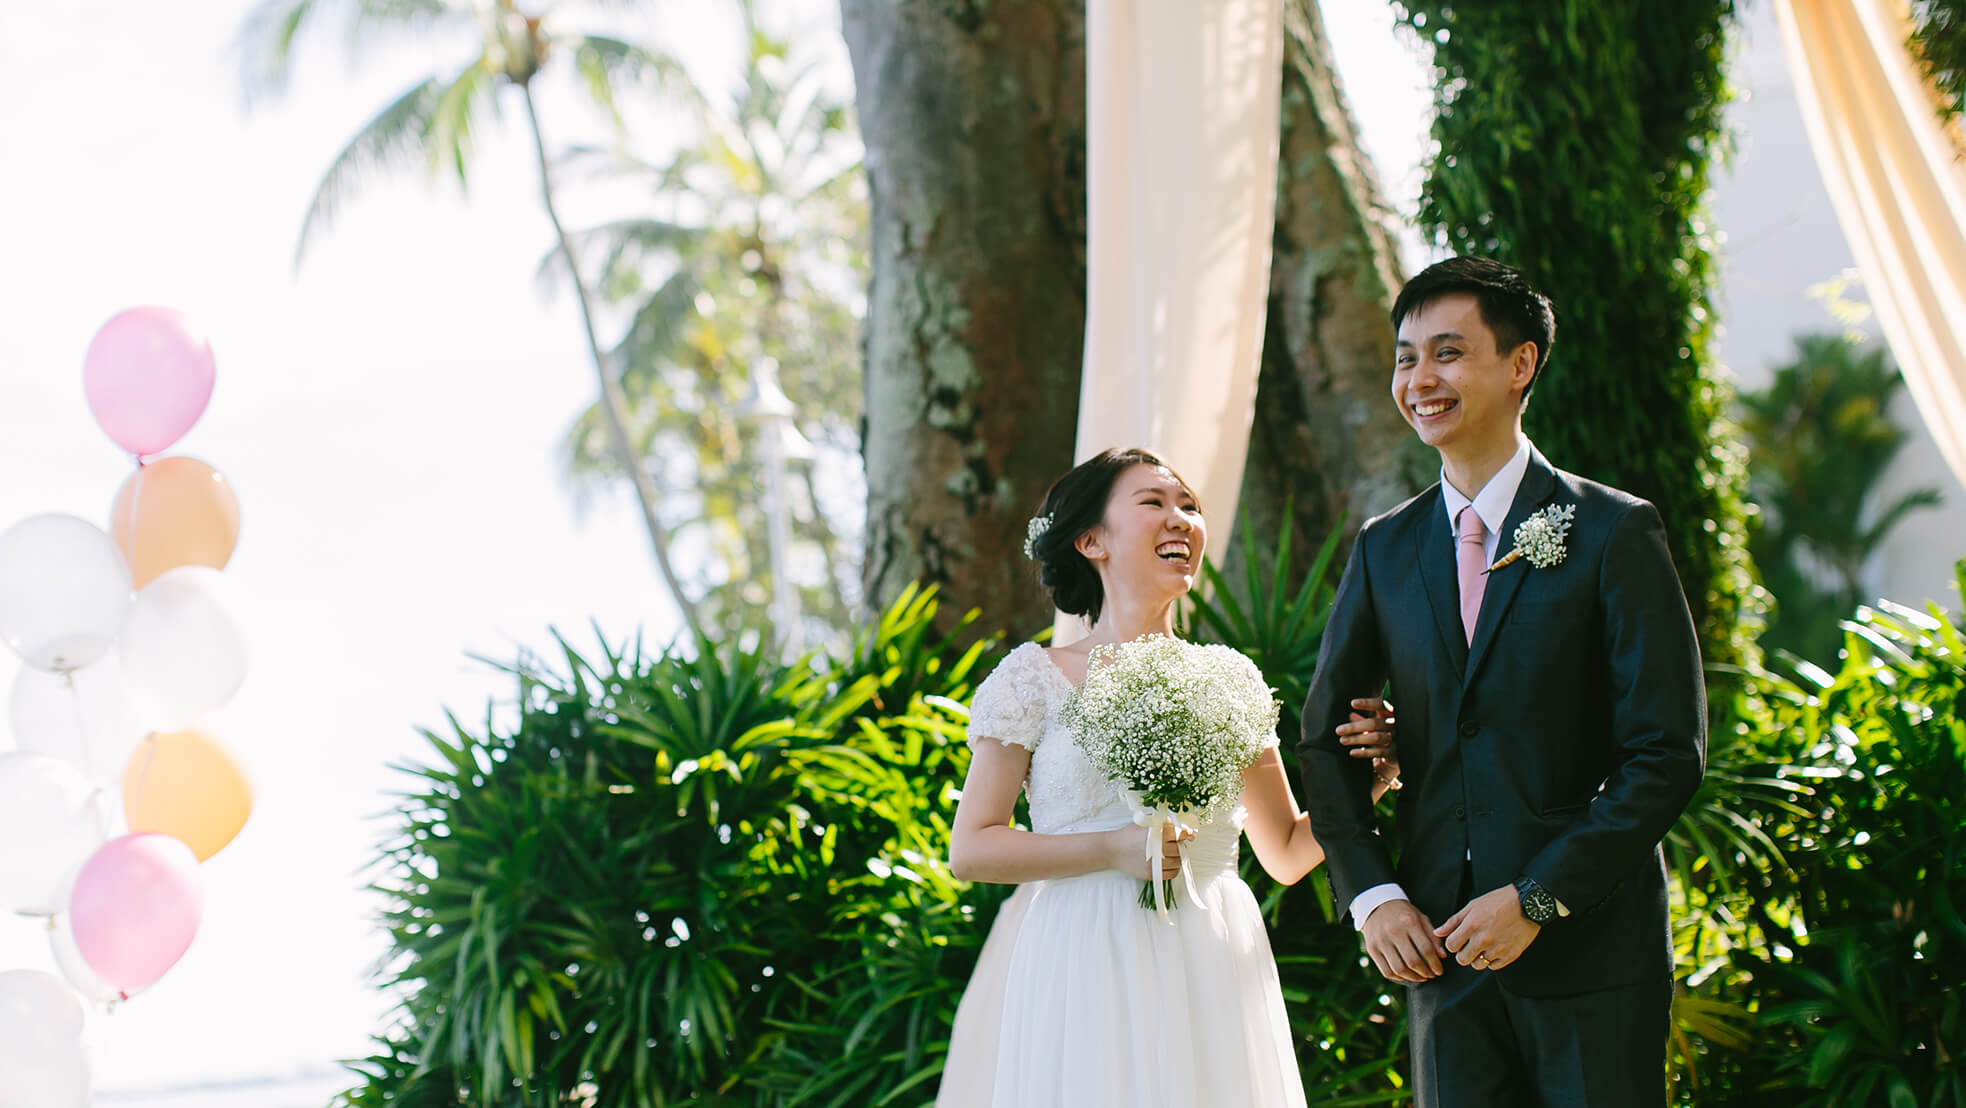 Sugar & Spice Events - Just married couple at the E&O Hotel Penang